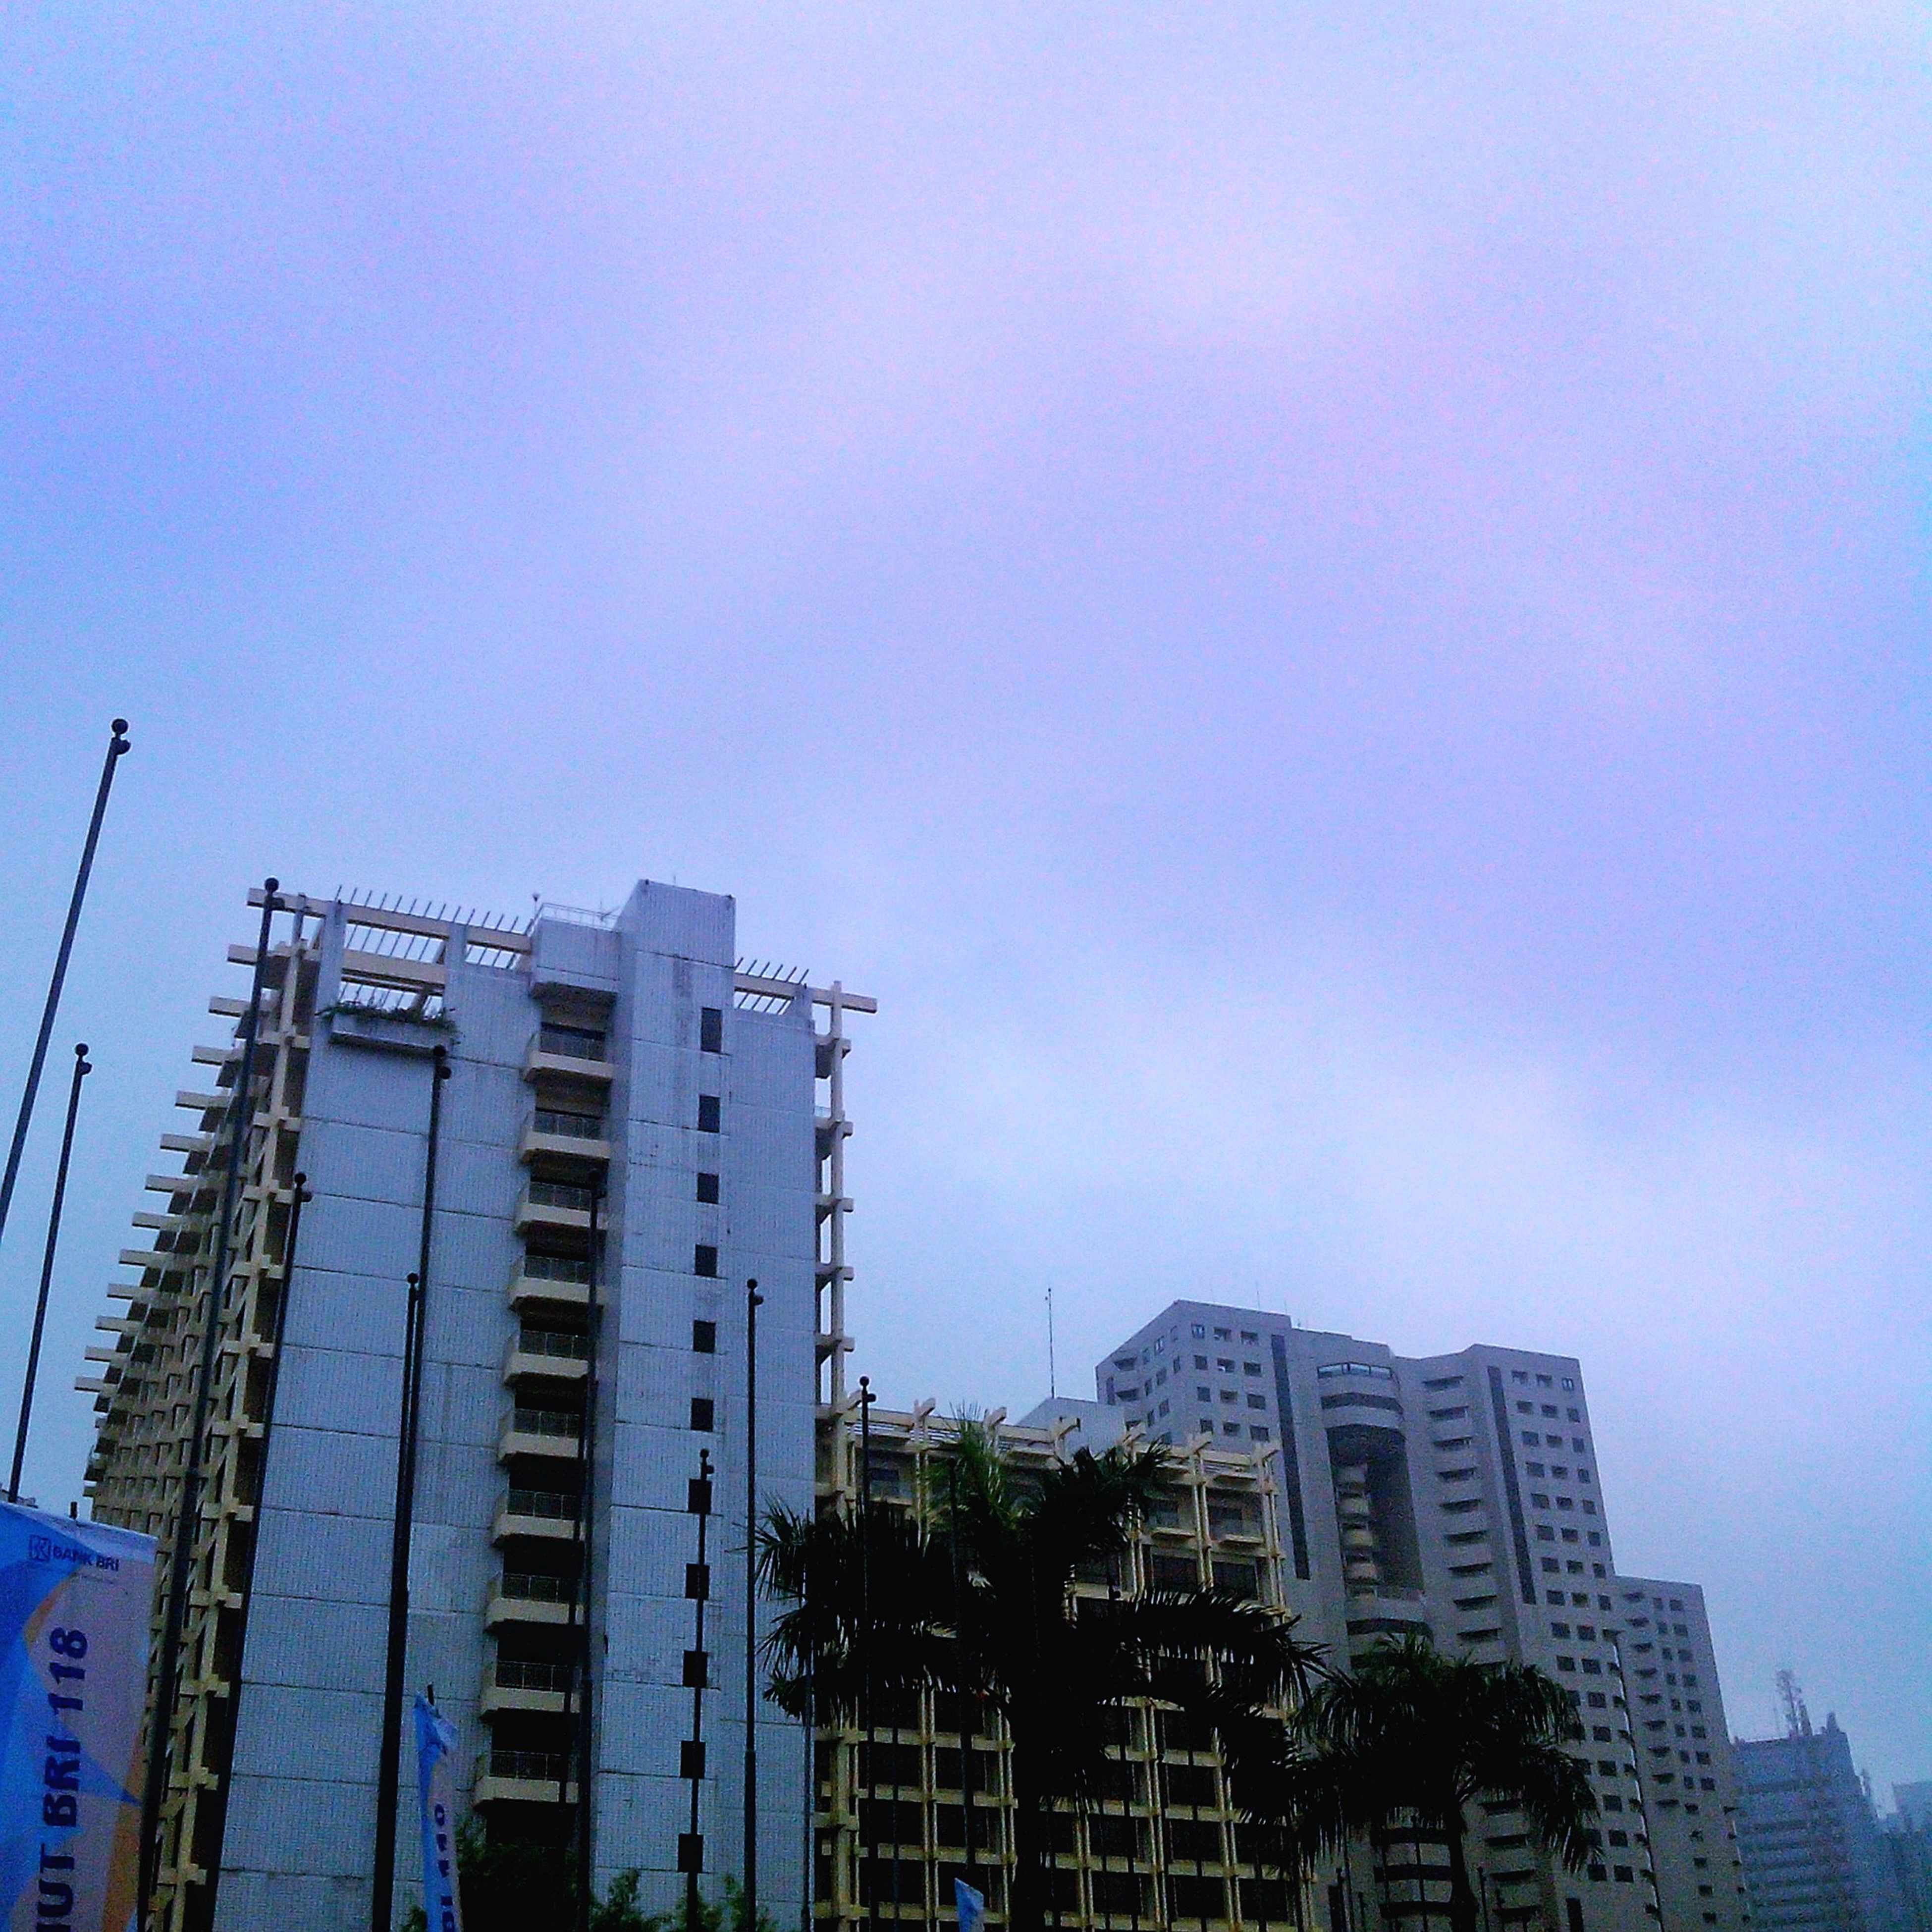 building exterior, architecture, built structure, city, low angle view, building, development, clear sky, copy space, sky, residential building, skyscraper, residential structure, tall - high, crane - construction machinery, tower, office building, outdoors, modern, day